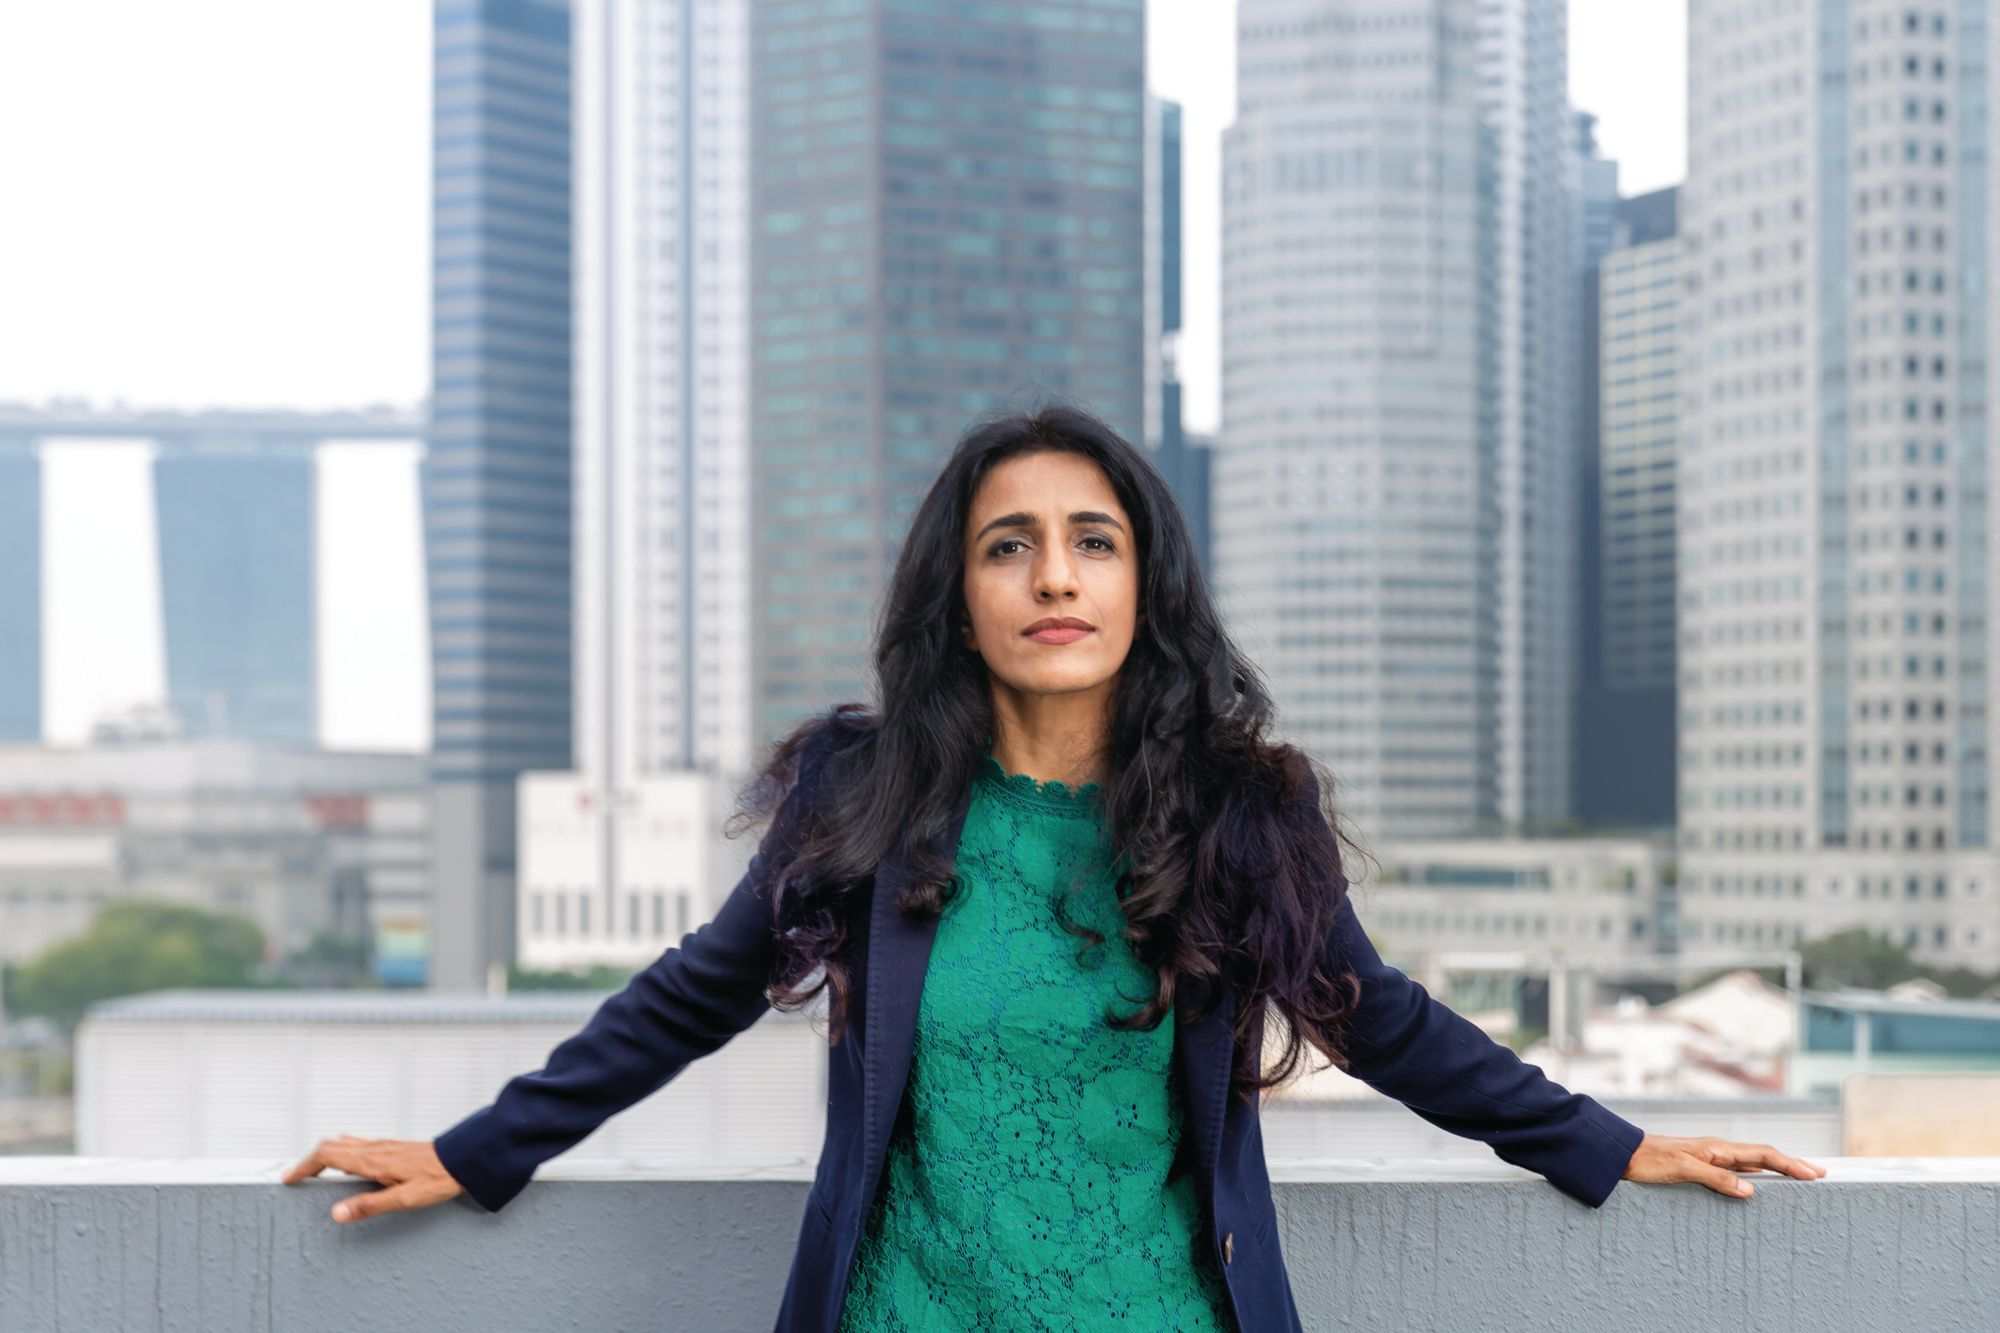 HSBC Jade Launches the #SupportEntreprenHER Campaign to Promote Women in Business